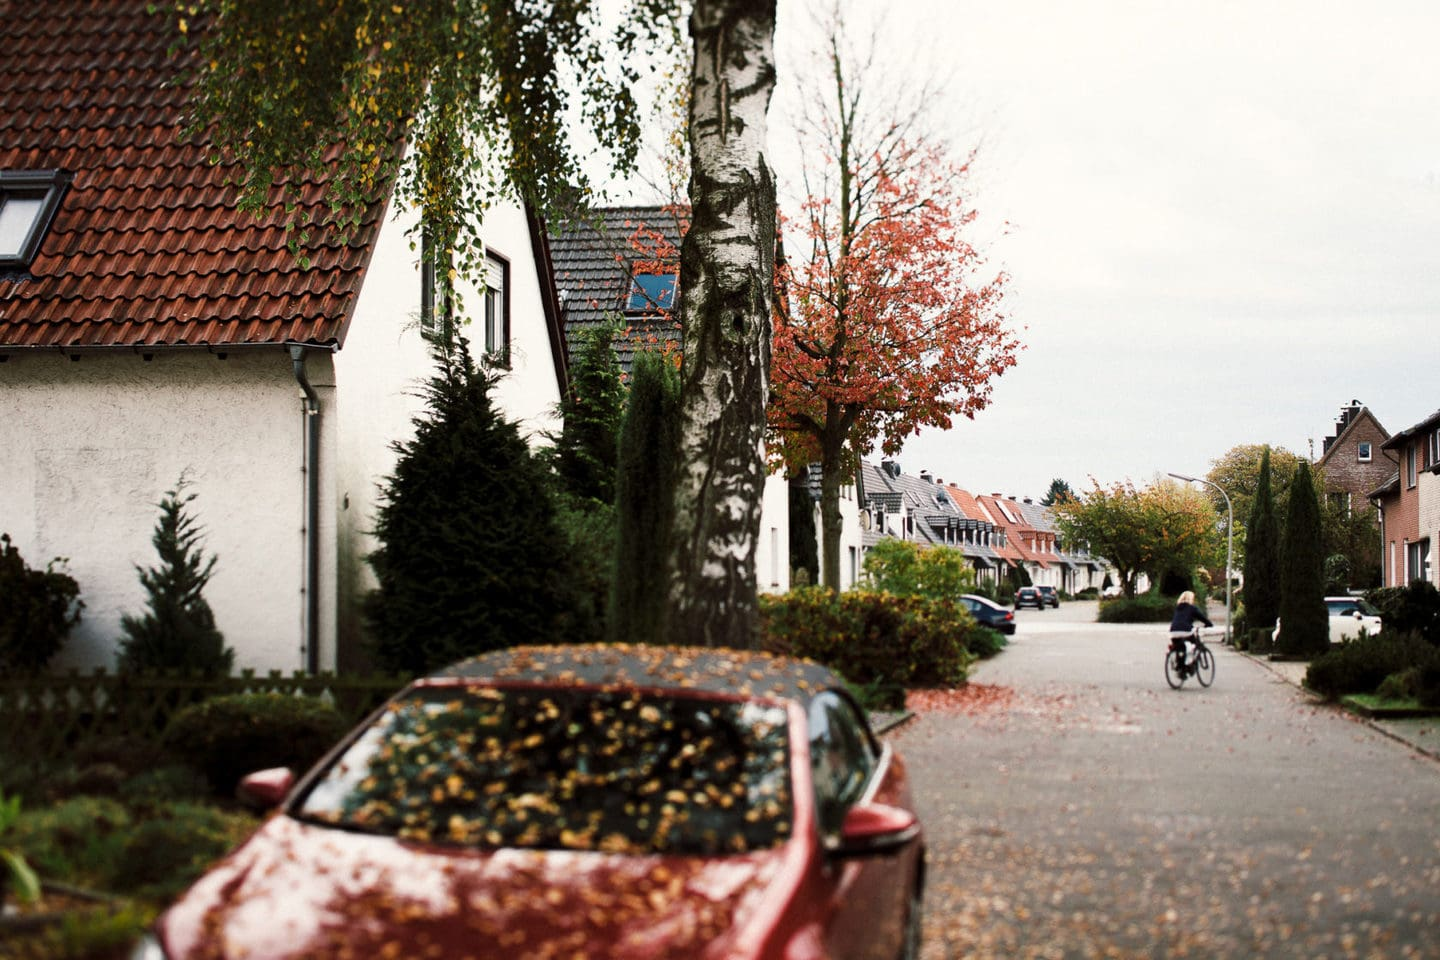 Herbst in Rietberg